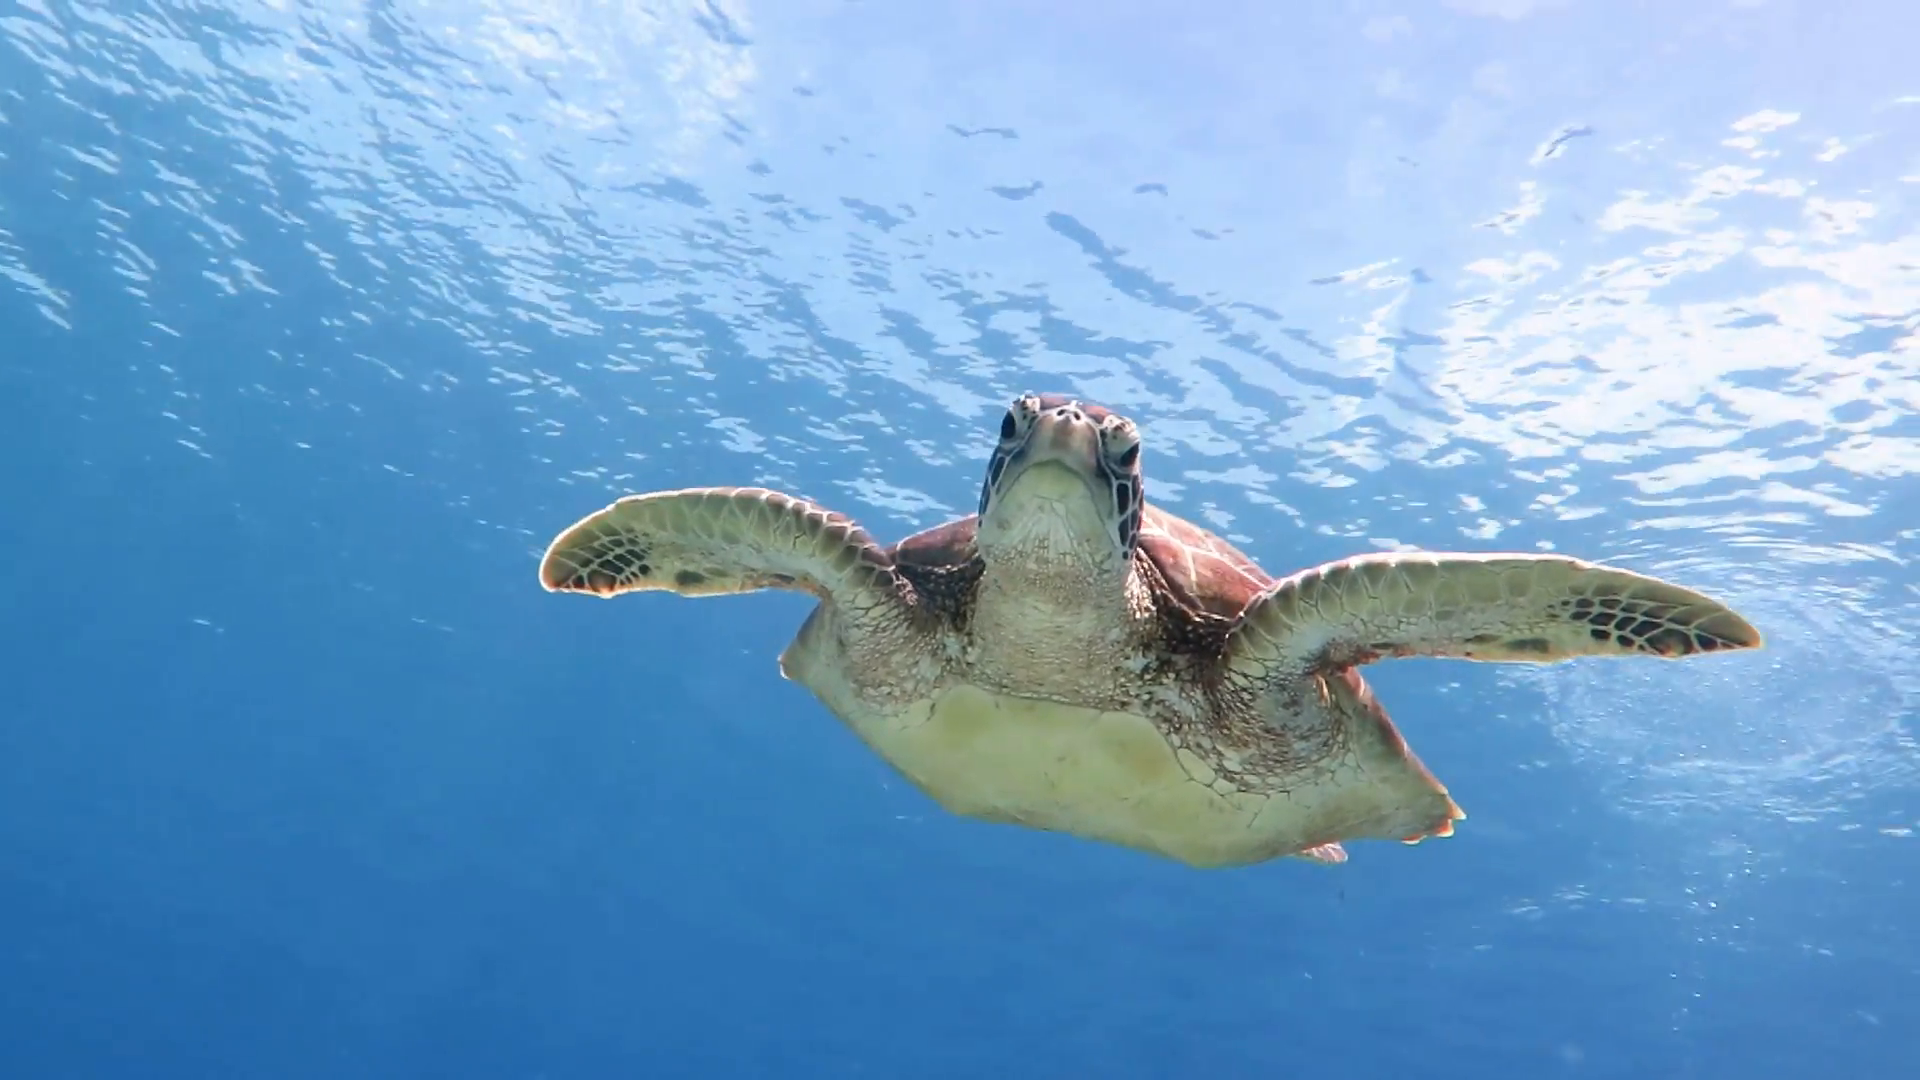 Big Hawksbill sea turtle swimming toward and above camera in a blue ...